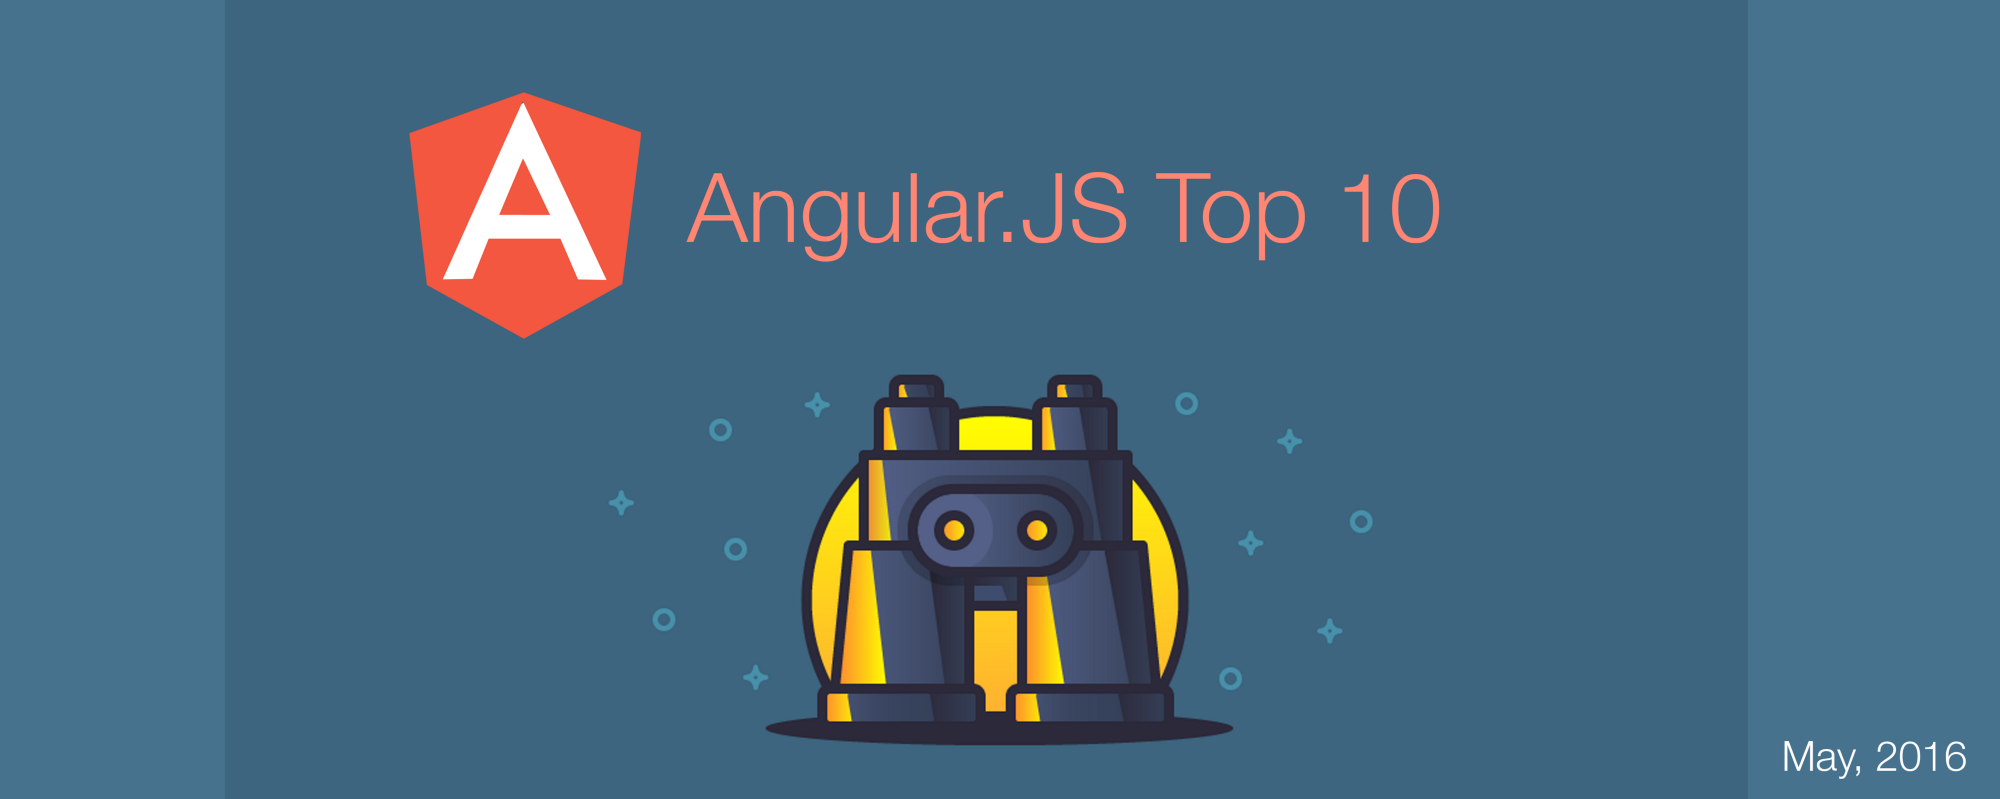 Top 10 Angular 2.0 Articles for the Past Month. (v.May)